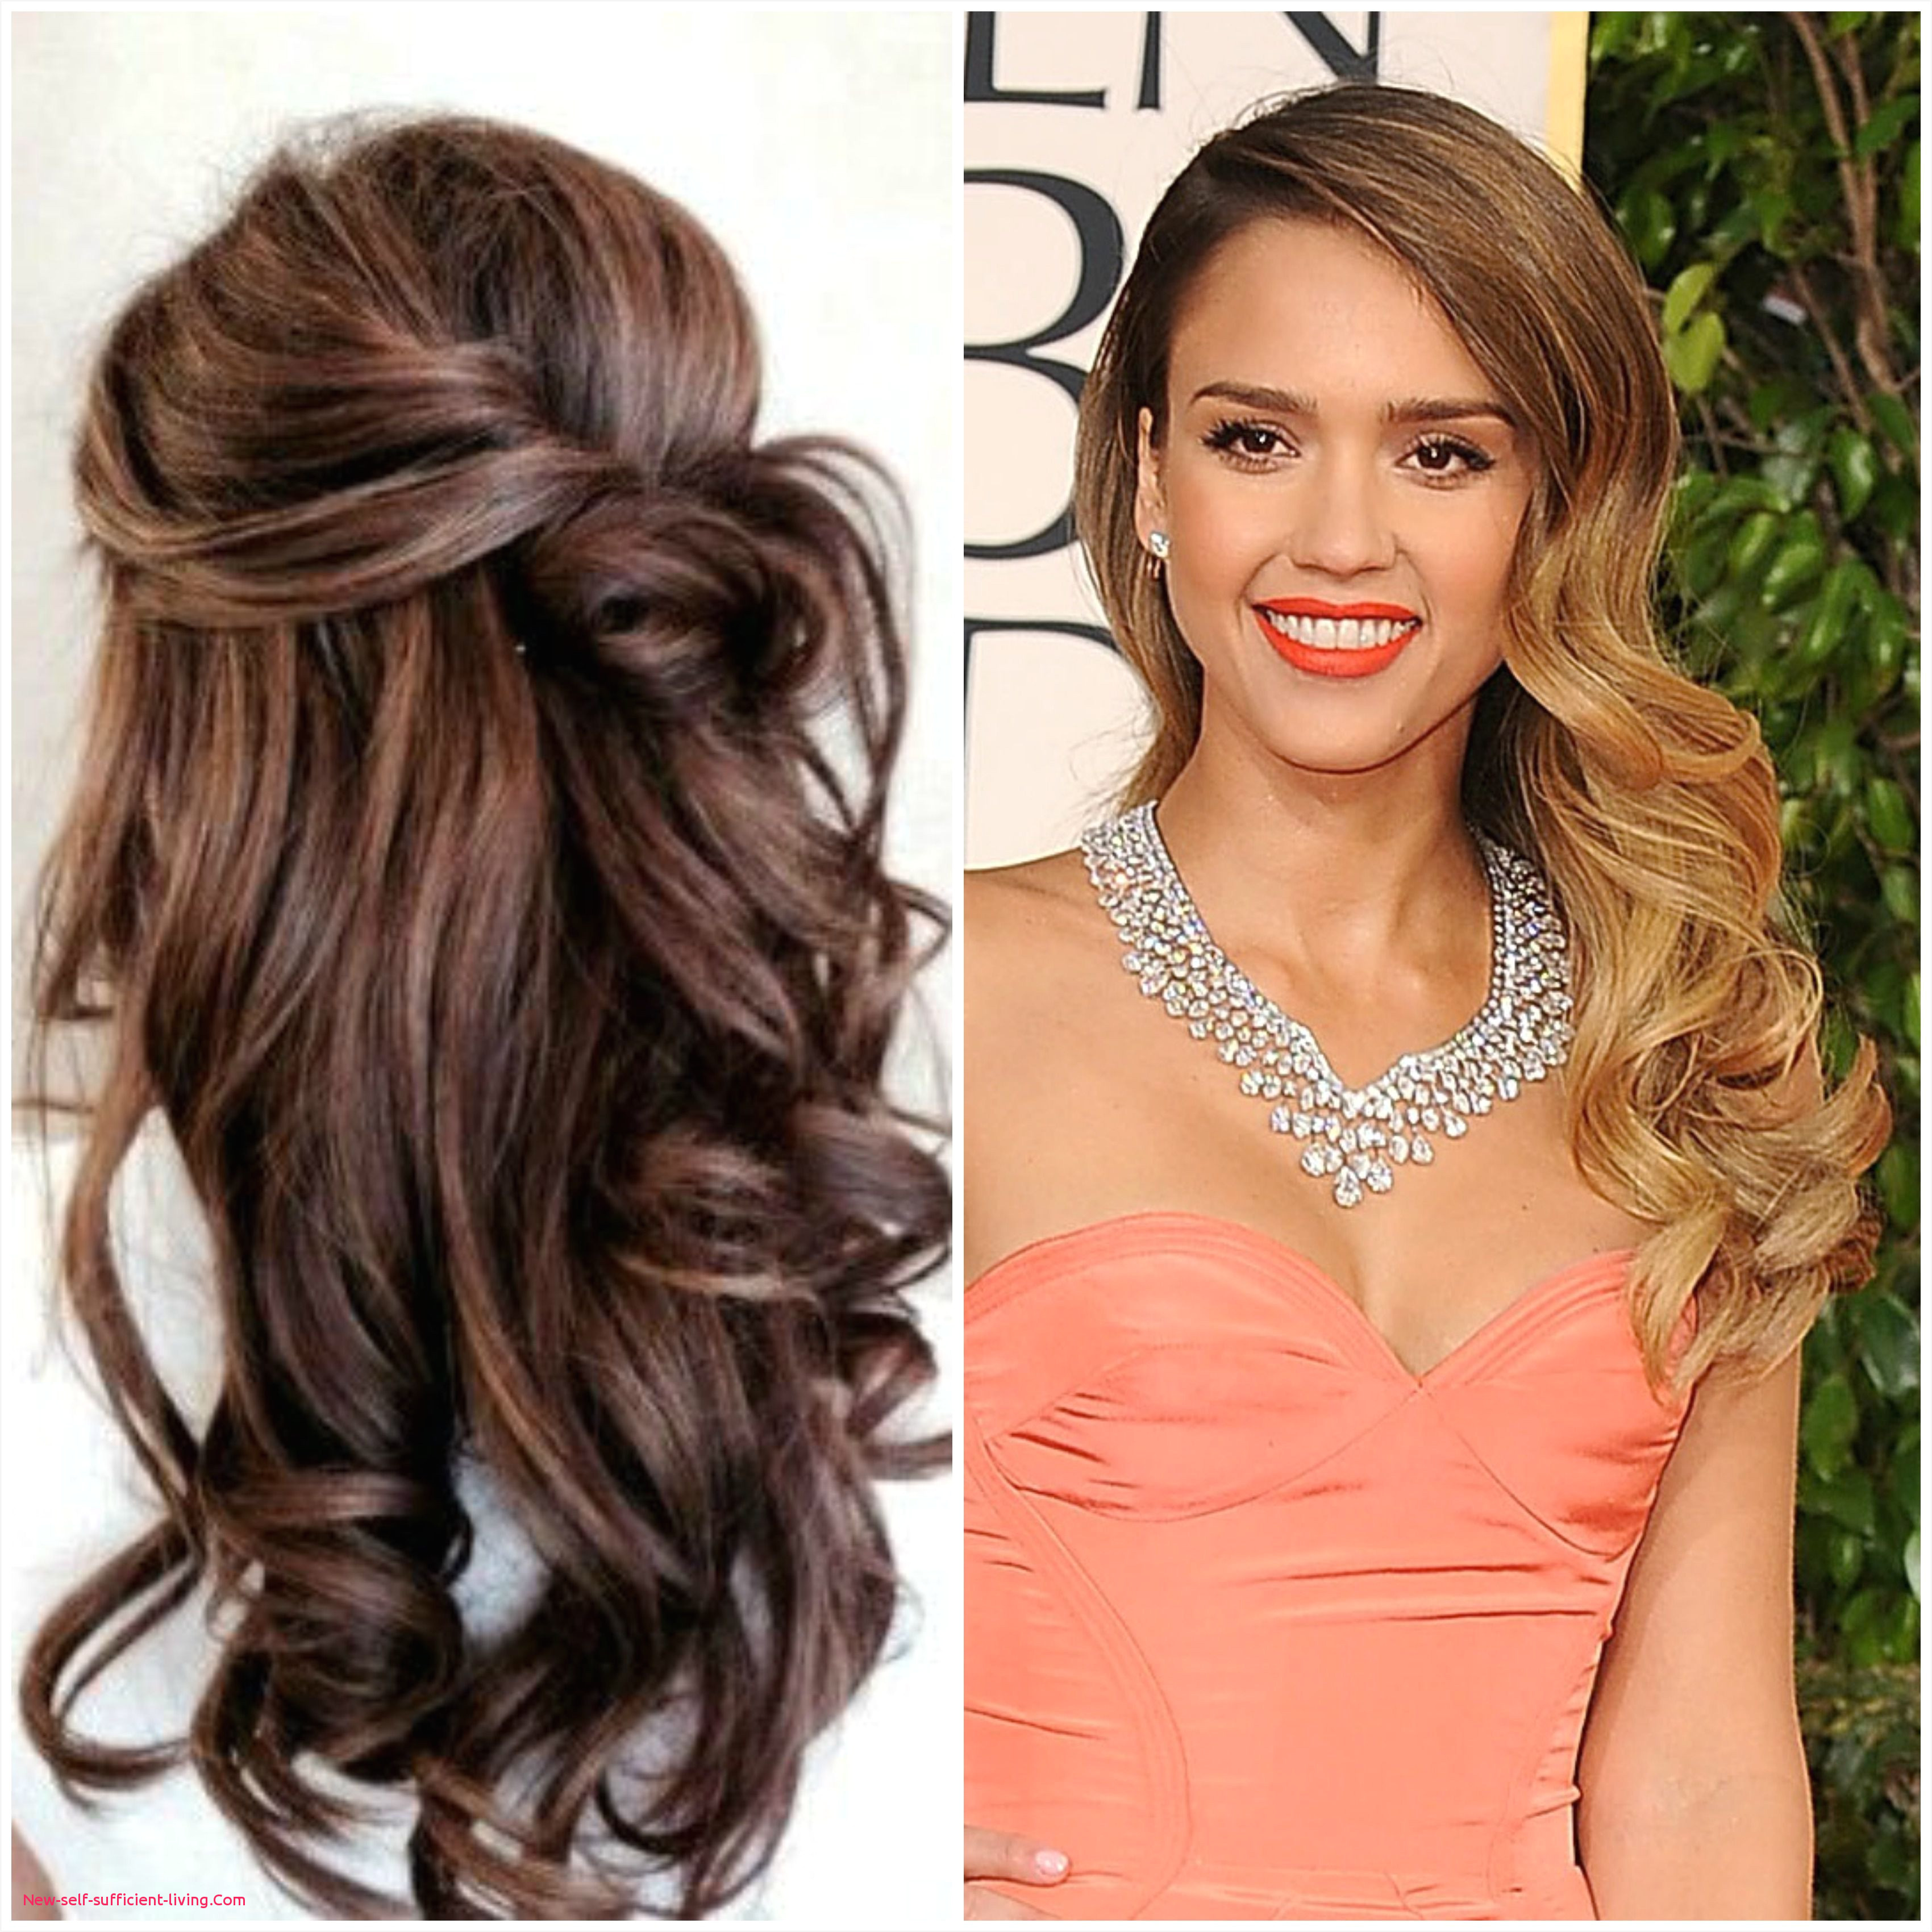 Hairstyles For Long Hair 2015 Luxury I Pinimg 1200x 0d 60 8a